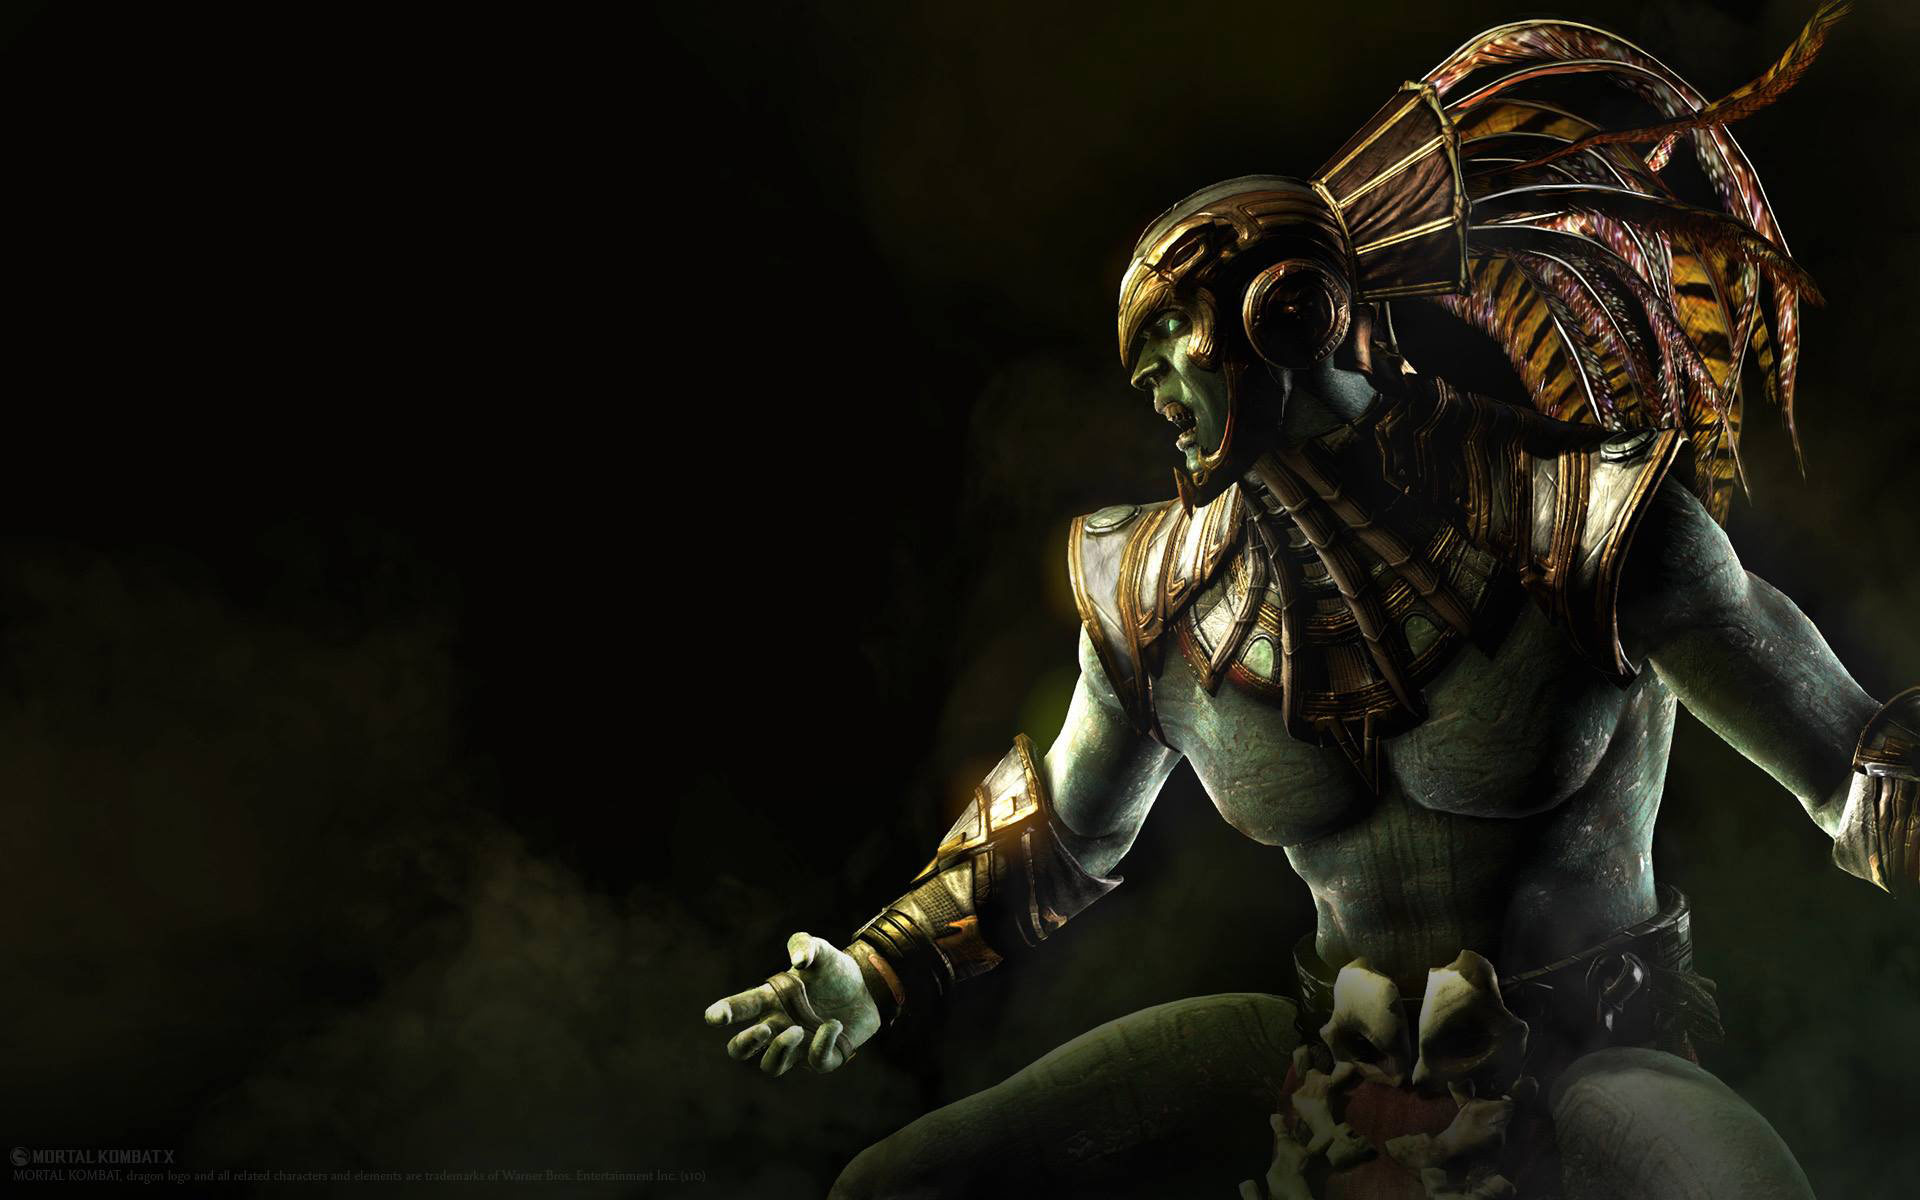 Mortal Kombat X wallpapers featuring oldnew characters image 2 1920x1200